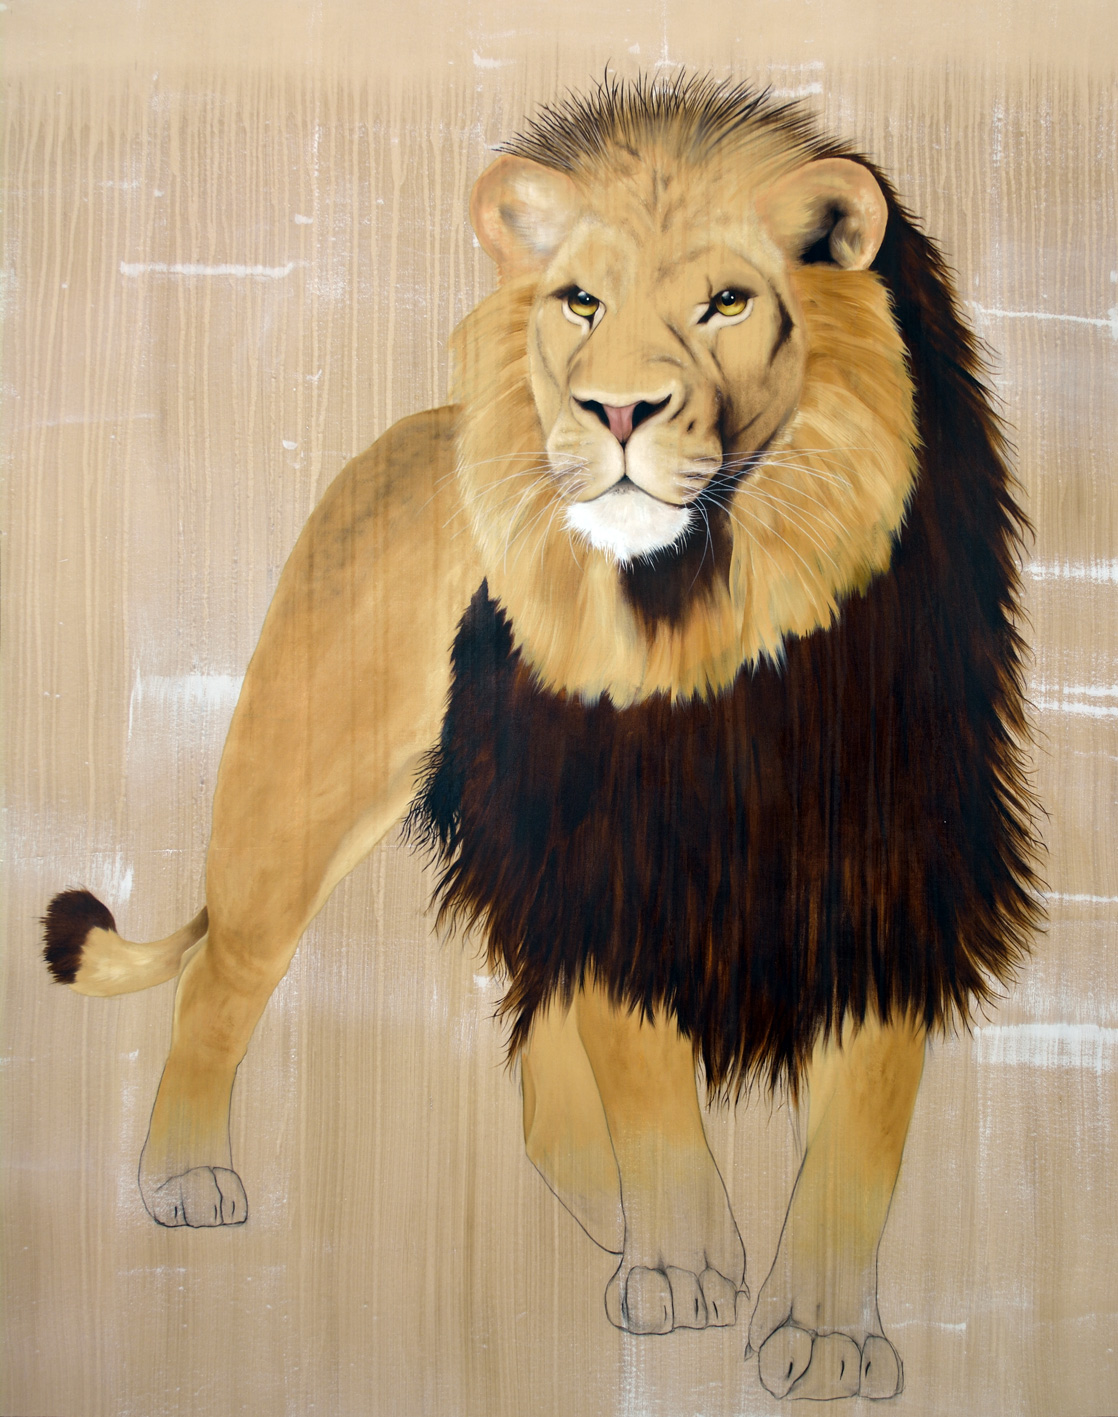 PANTHERA LEO LEO atlas-lion-panthera-leo Thierry Bisch painter animals painting art decoration hotel design interior luxury nature biodiversity conservation